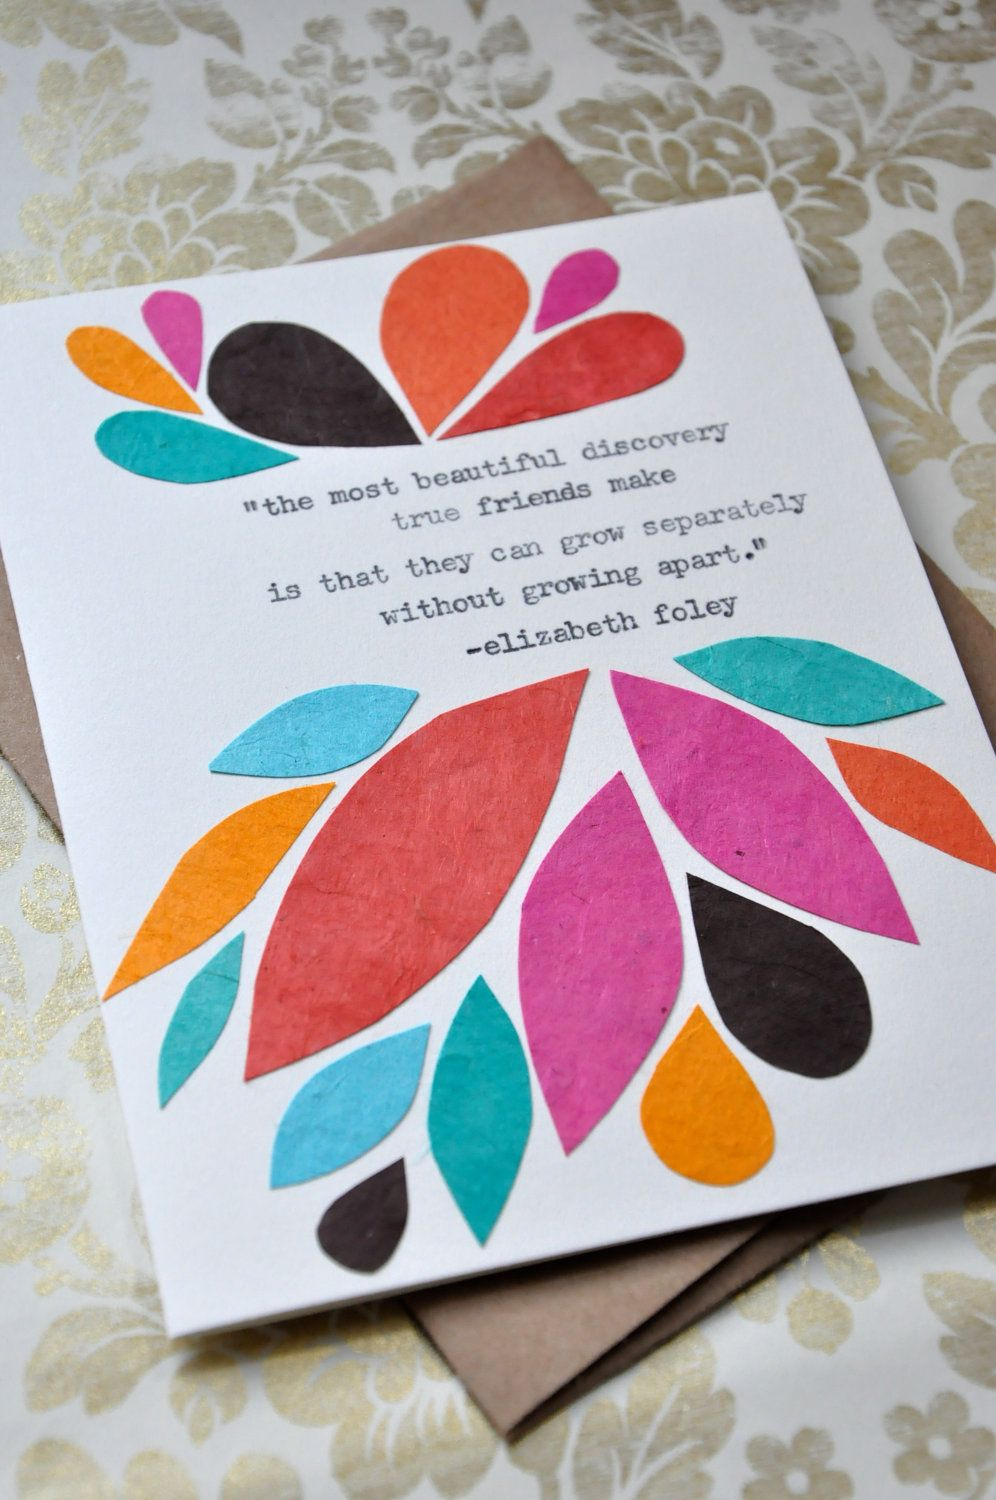 Birthday card handmade greeting card friendship quote abstract birthday card handmade greeting card friendship quote abstract leaves friendship card bookmarktalkfo Gallery